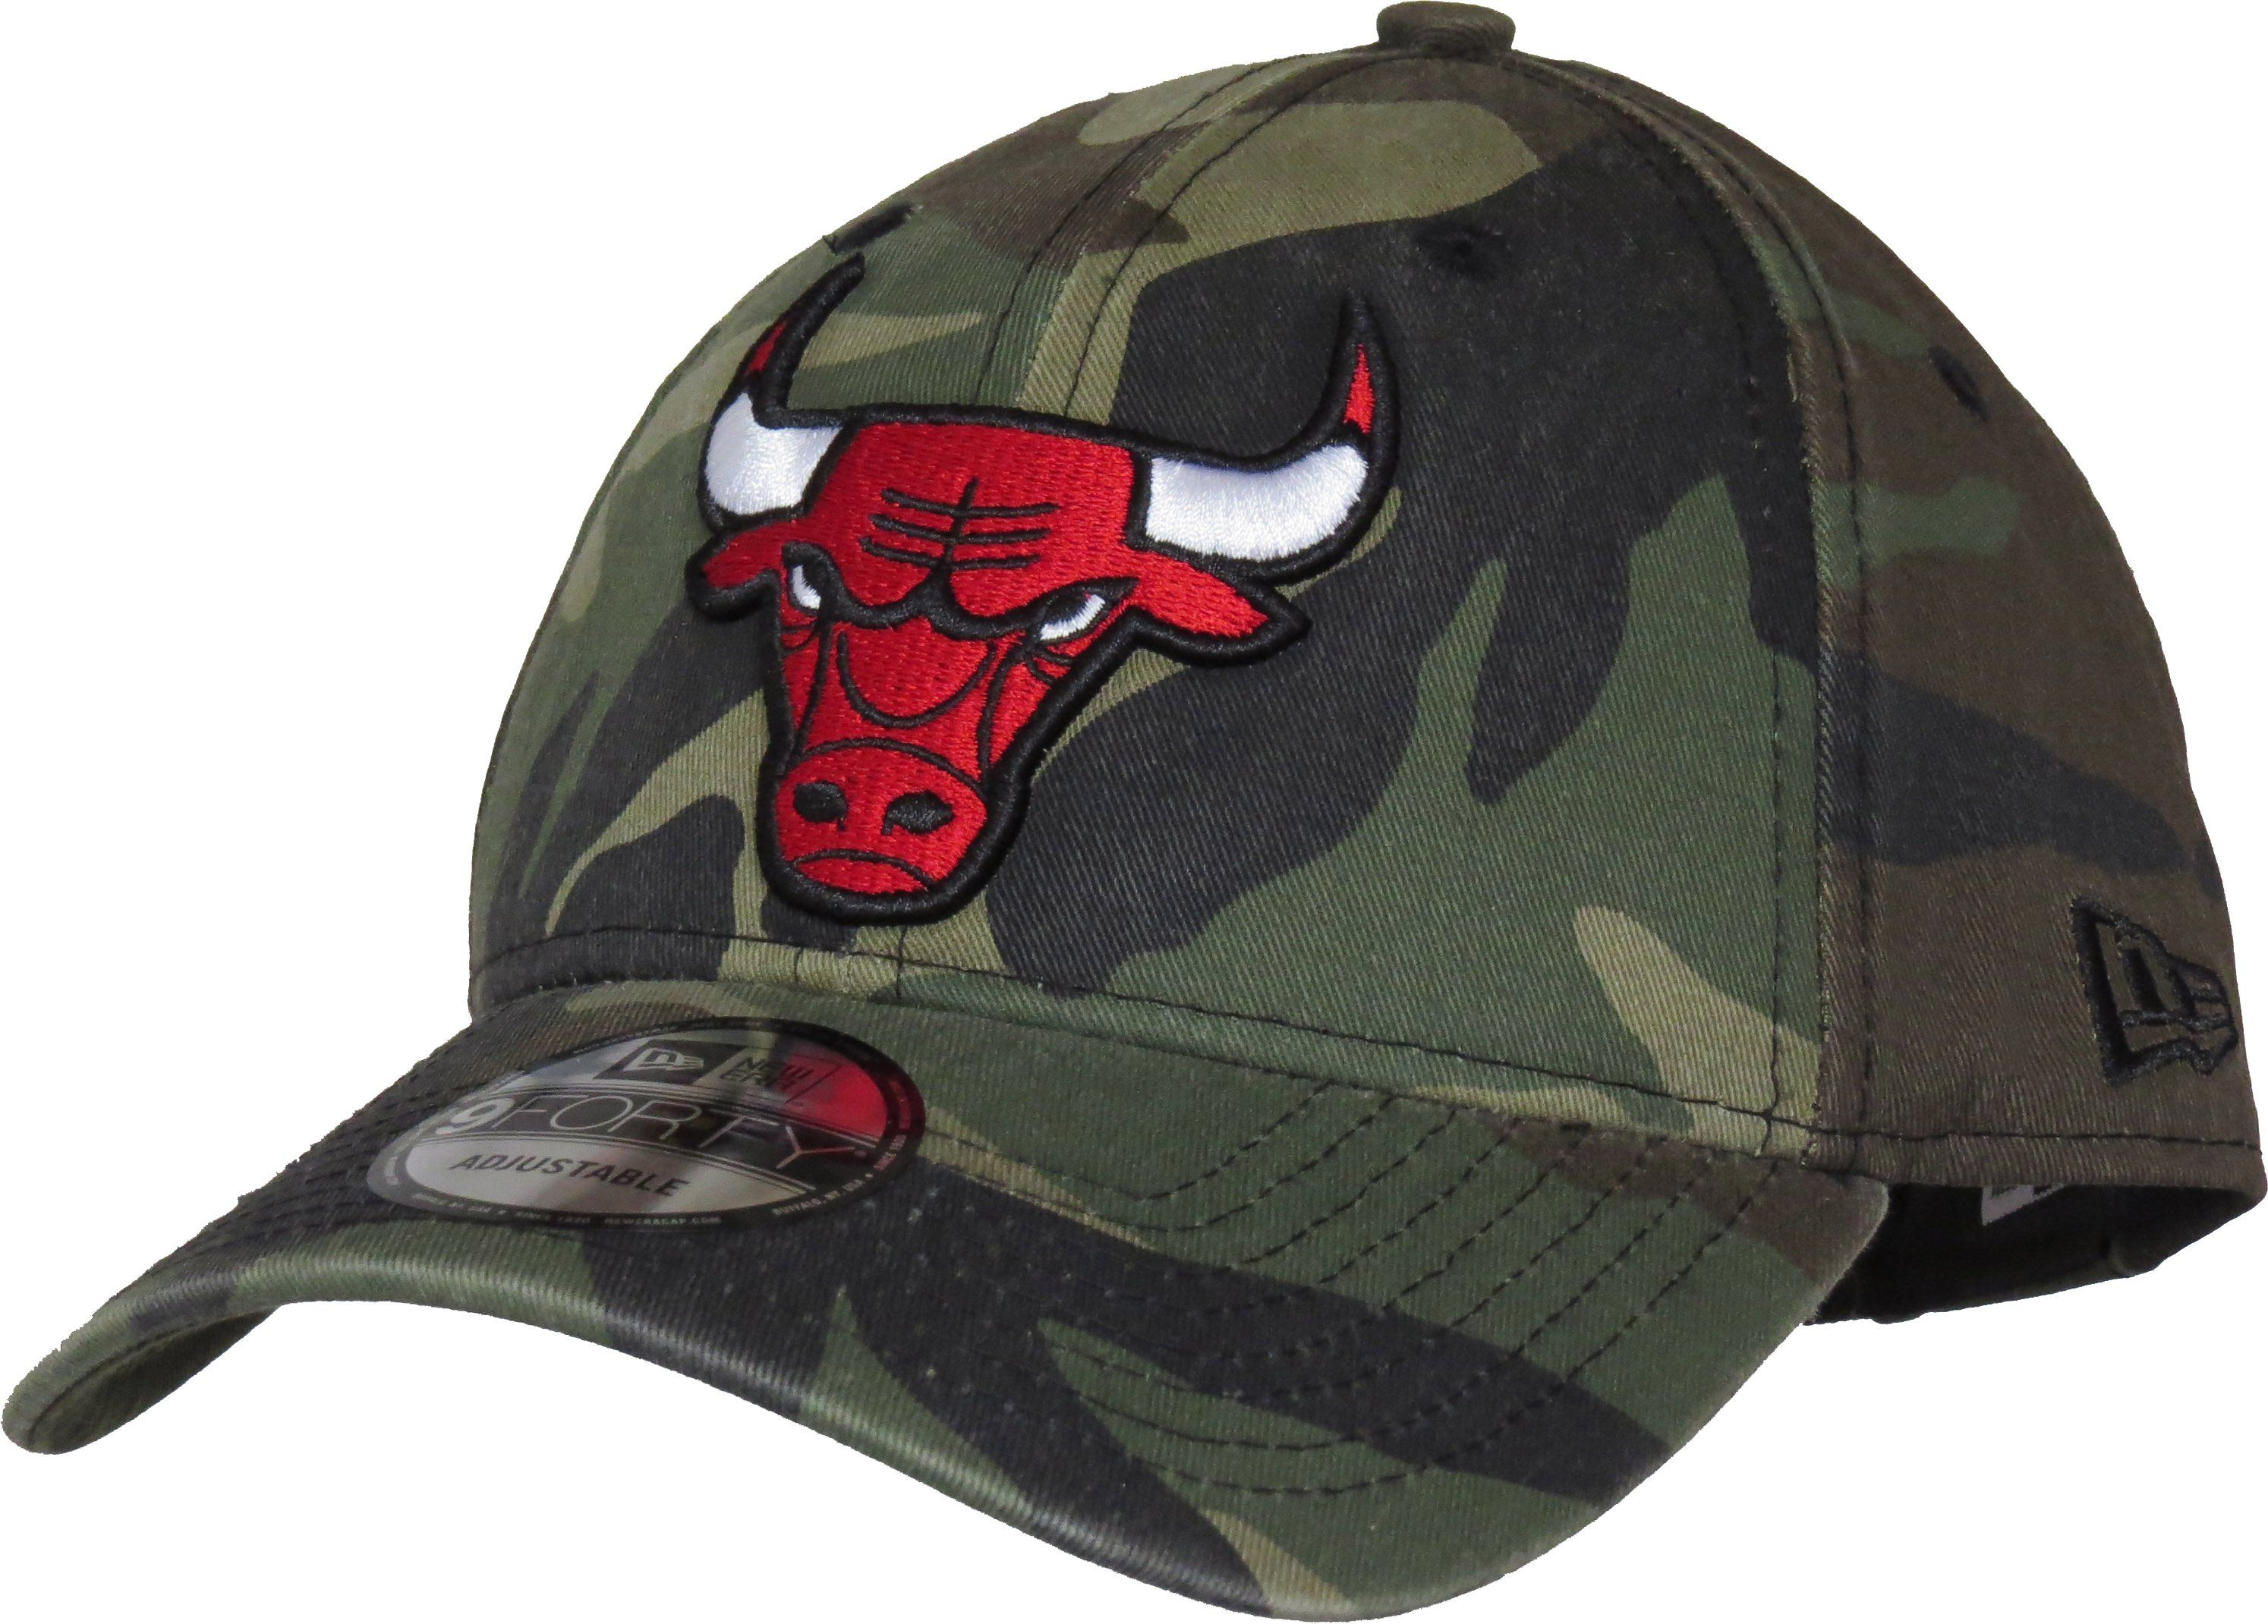 ddbc429ce27 Chicago Bulls New Era 940 Washed Camo Cap – lovemycap